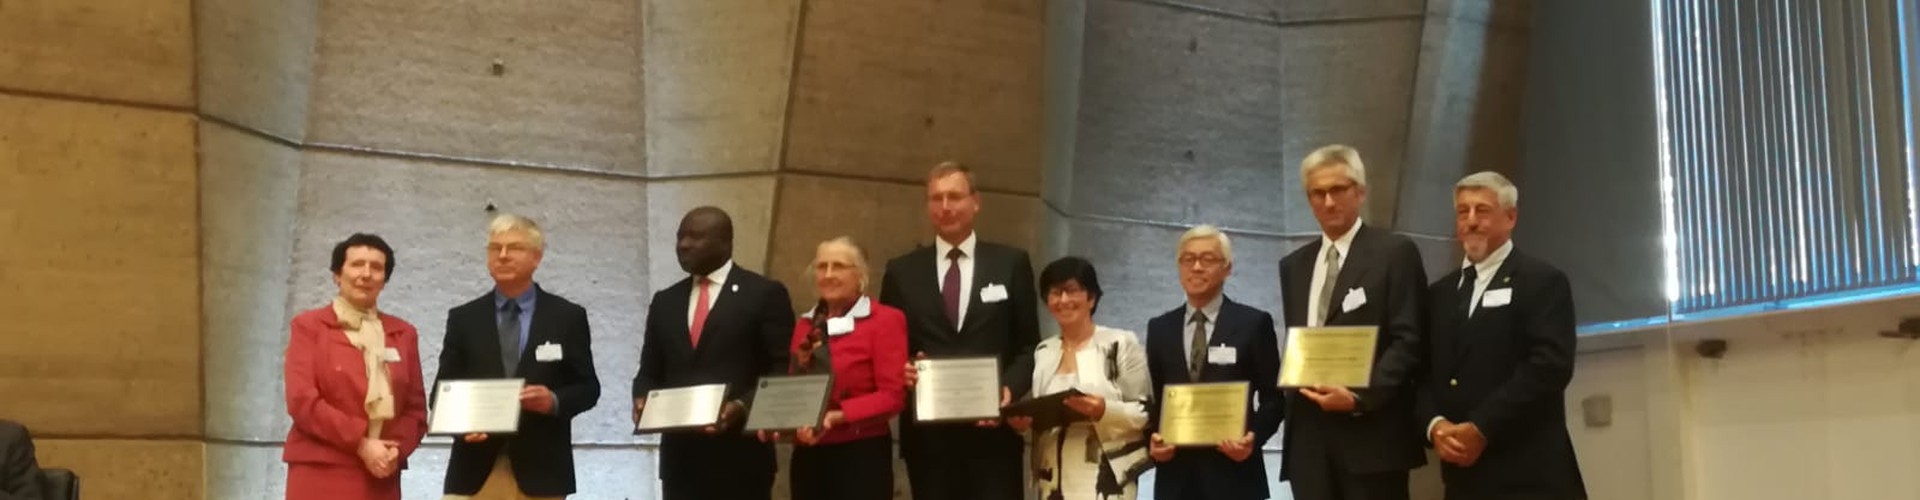 EGU President Alberto Montanari (second from right) on stage with other awardees at the IUGG event